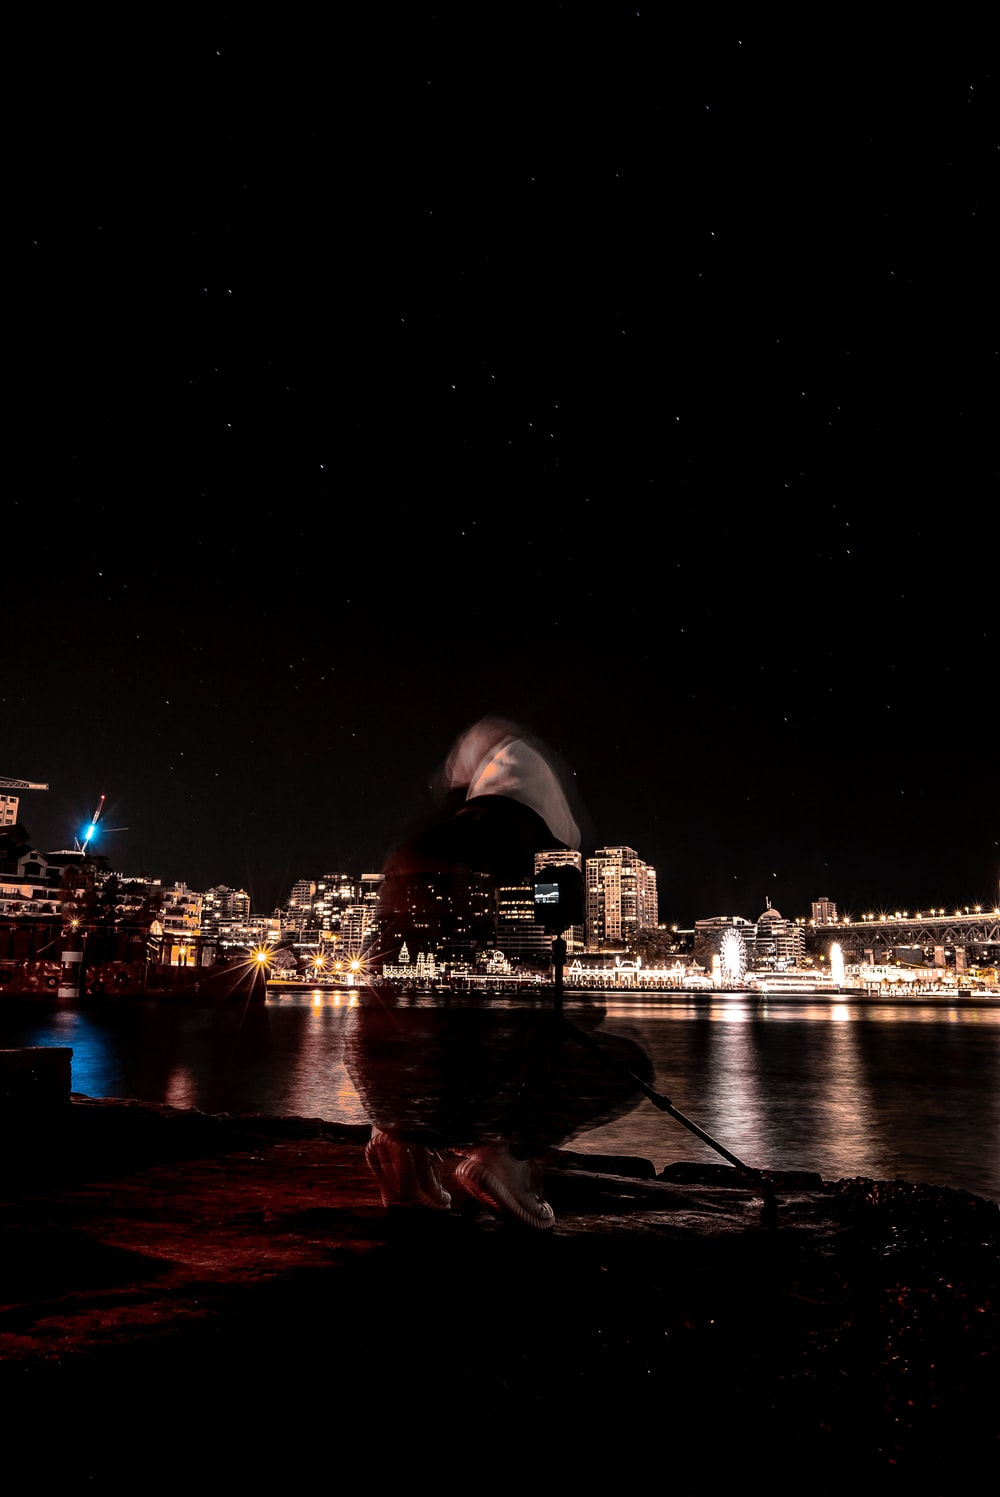 photography of building beside body of water during nighttime